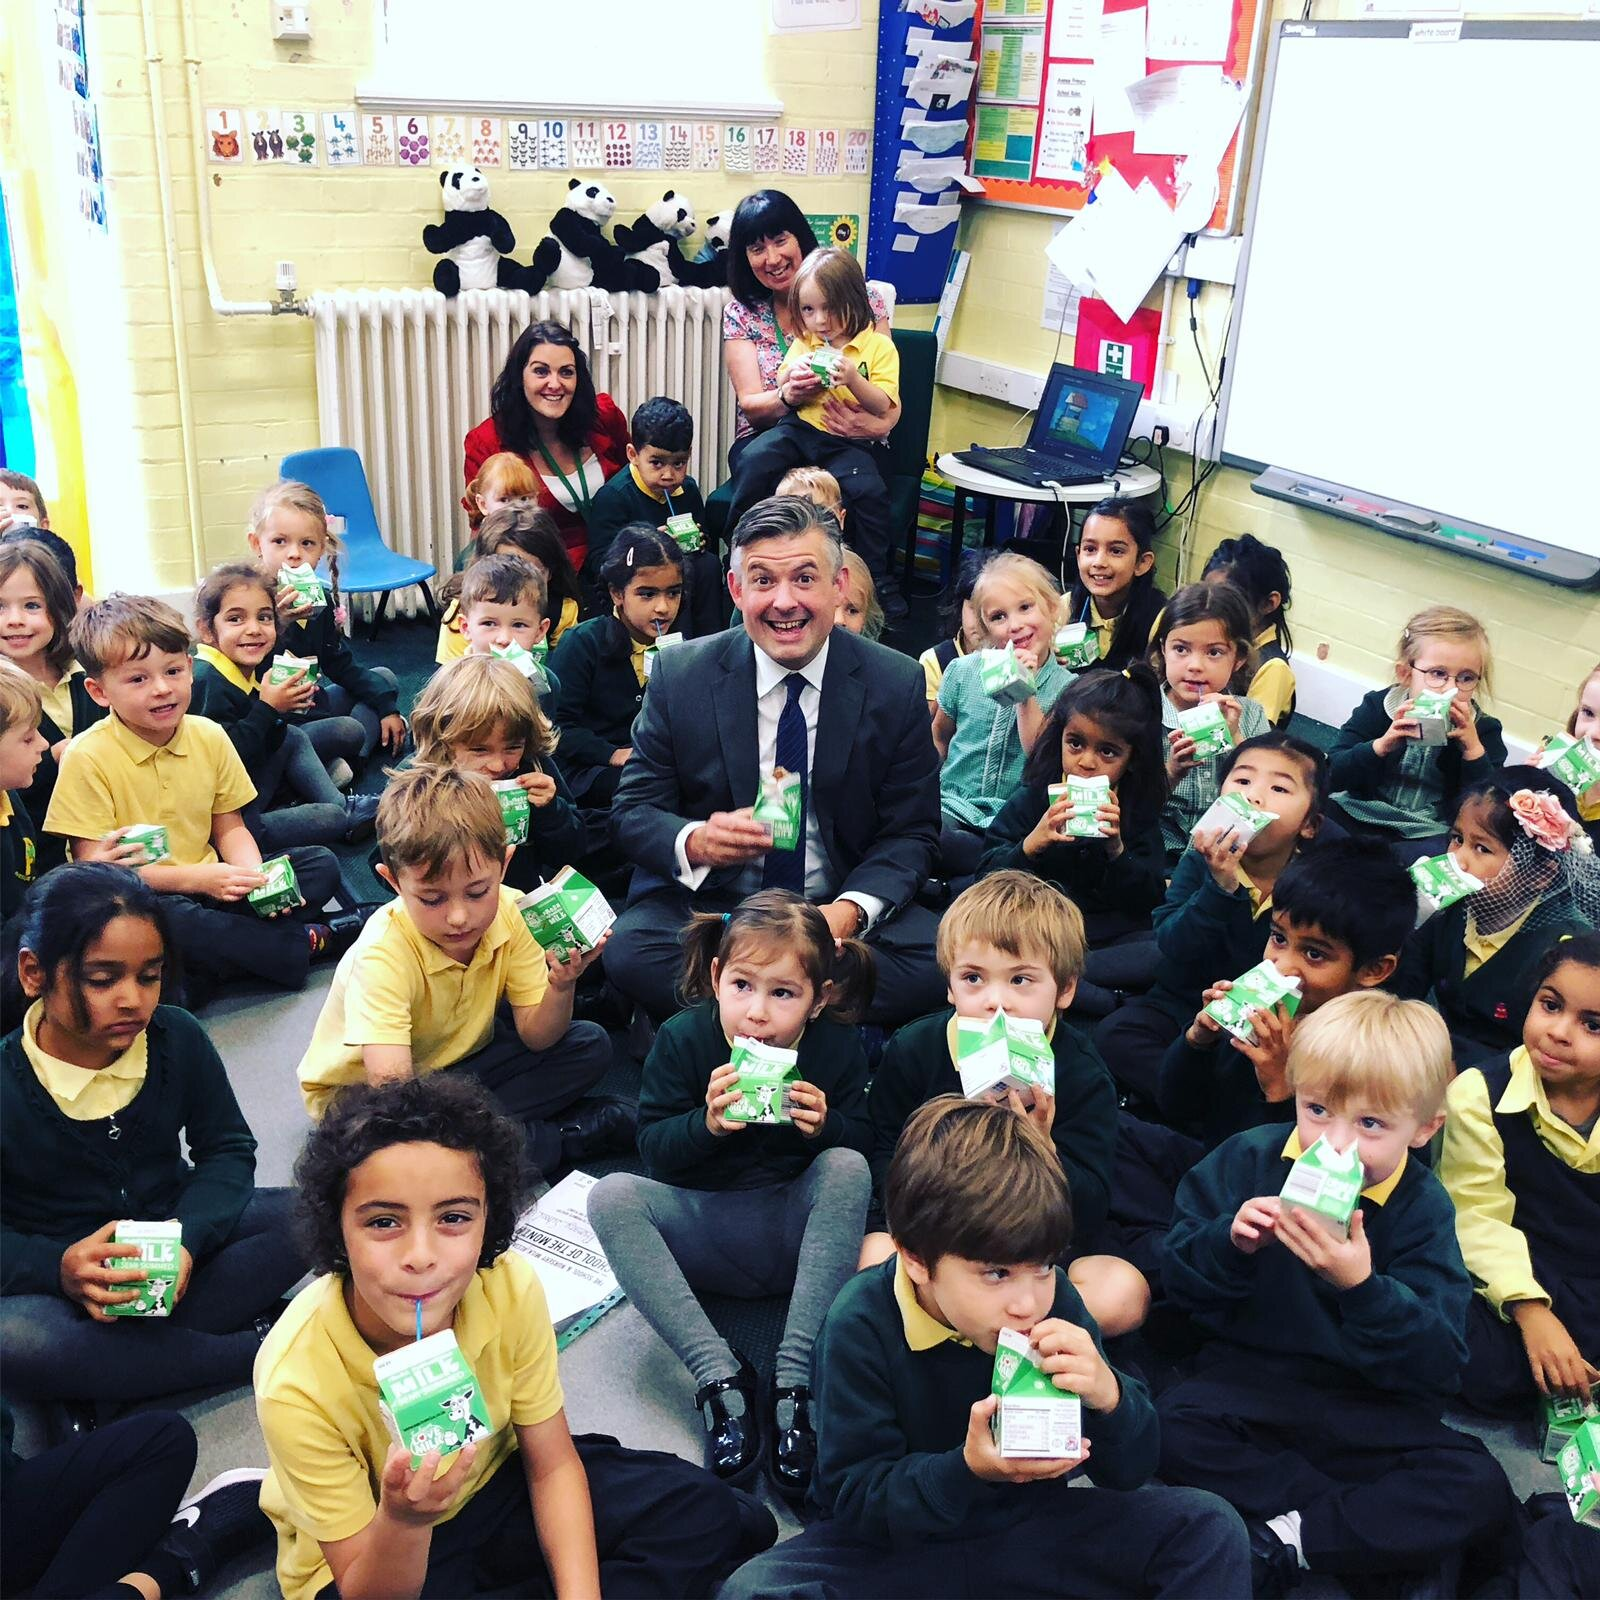 Jon visiting Avenue Primary School as part of World School Milk Day, and congratulating the staff as the school receives award winning recognition for promoting school milk - Friday September 27 2019